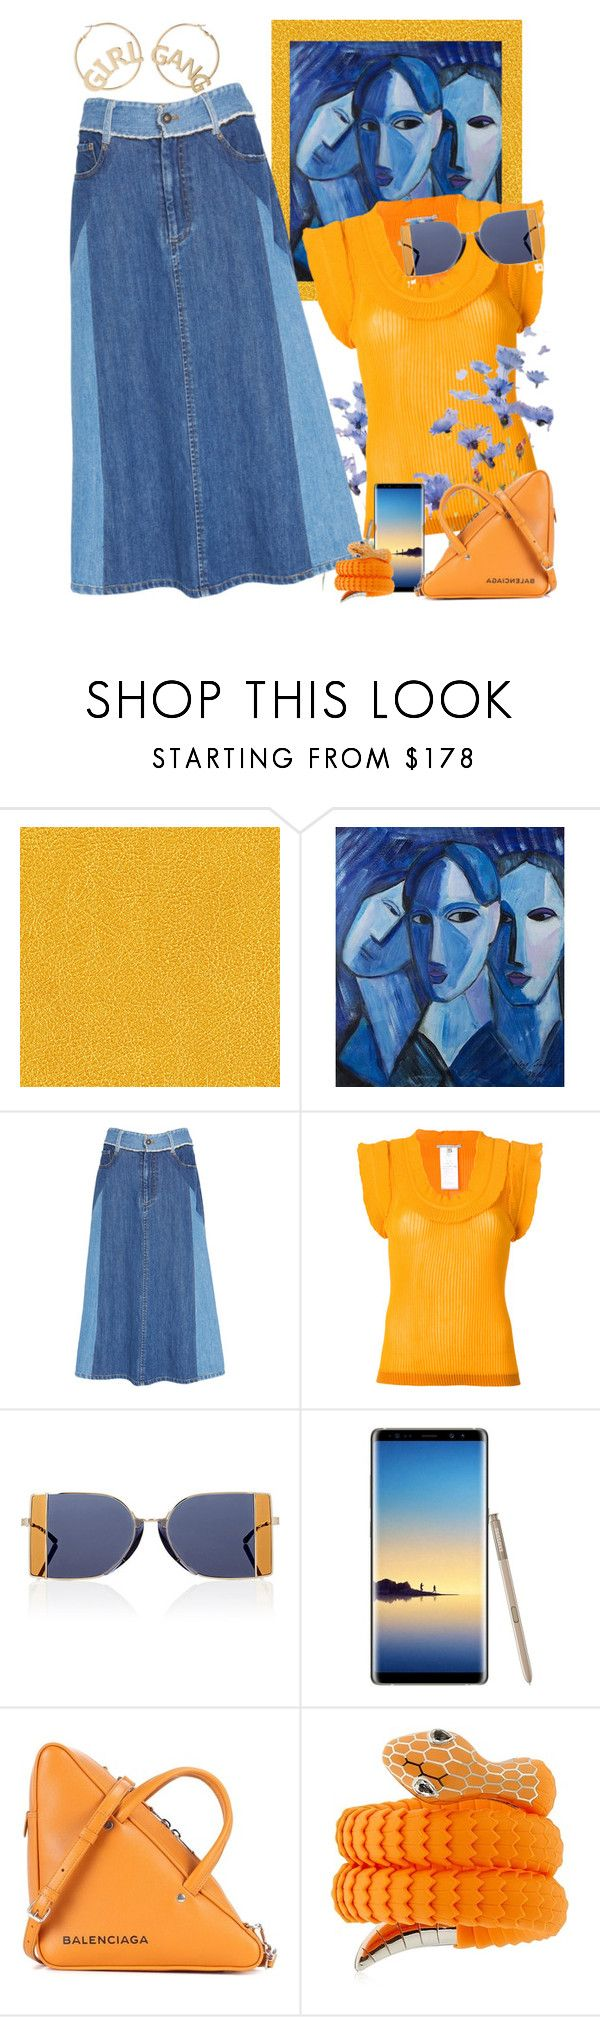 """Orange & Blue Contest"" by petalp ❤ liked on Polyvore featuring Élitis, NOVICA, Sea, New York, Marco de Vincenzo, Calvin Klein 205W39NYC, Samsung, Balenciaga, Tamara Donalli and BP."